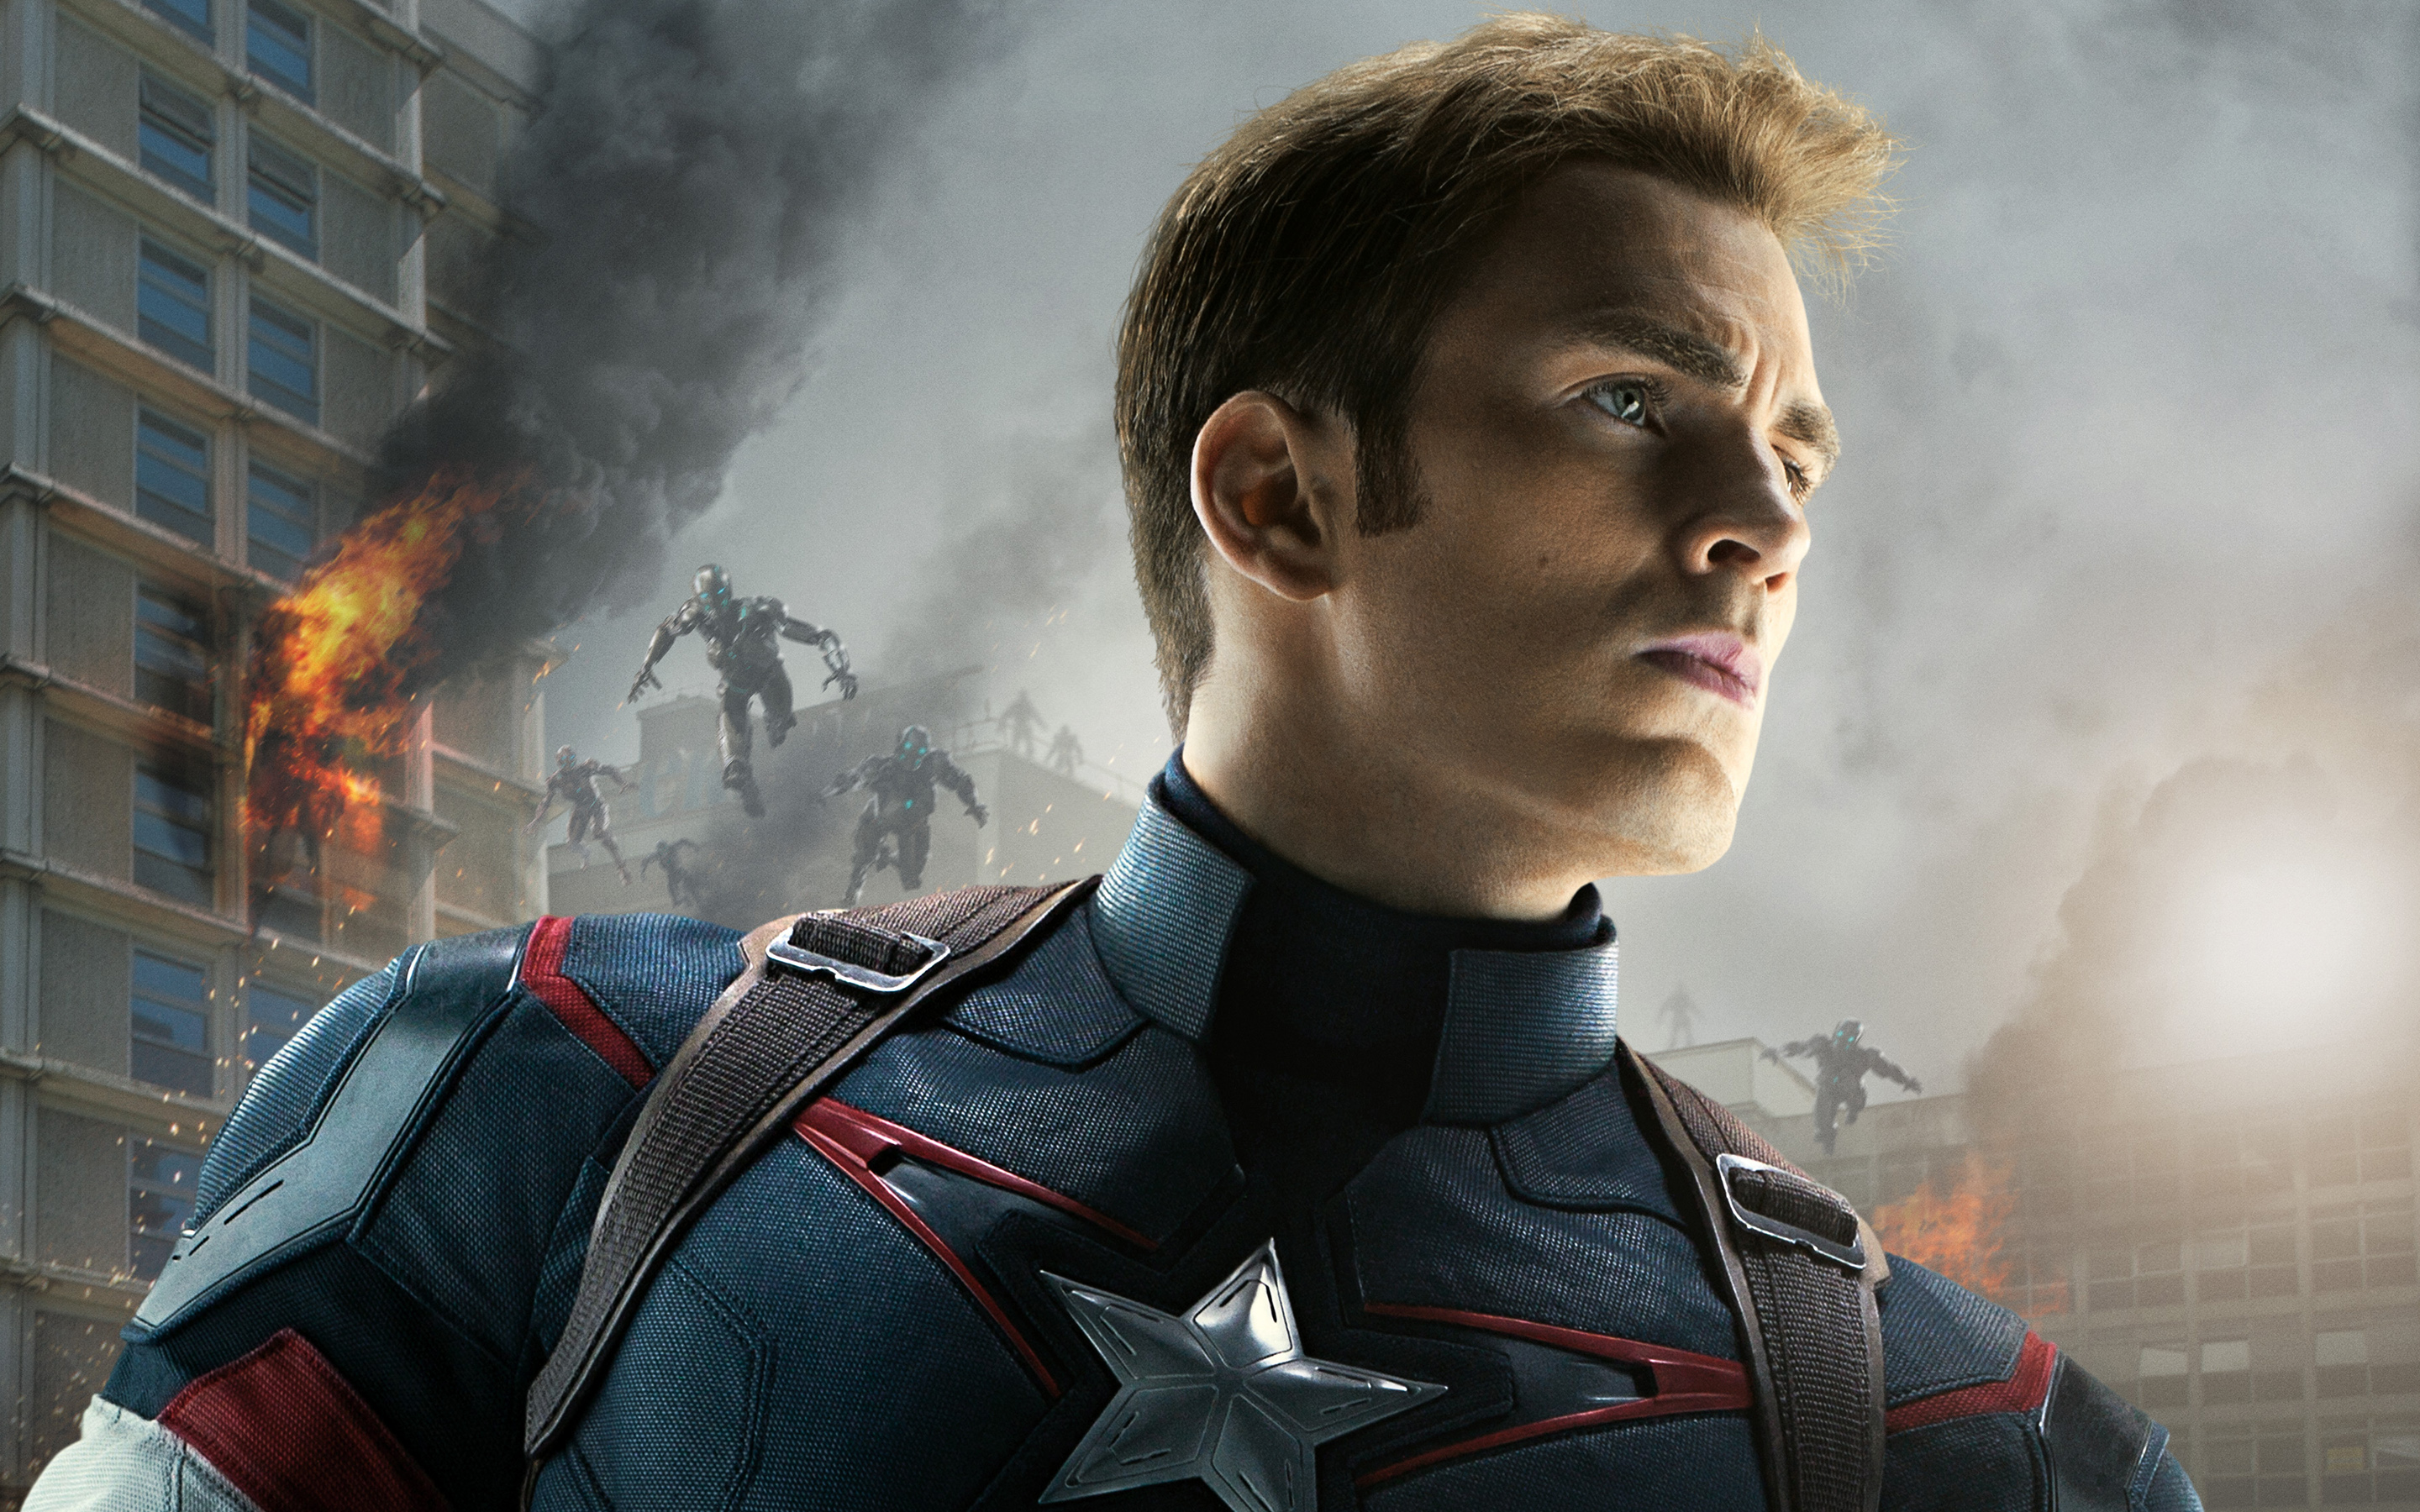 Free Download Captain America Hd Wallpapers Download